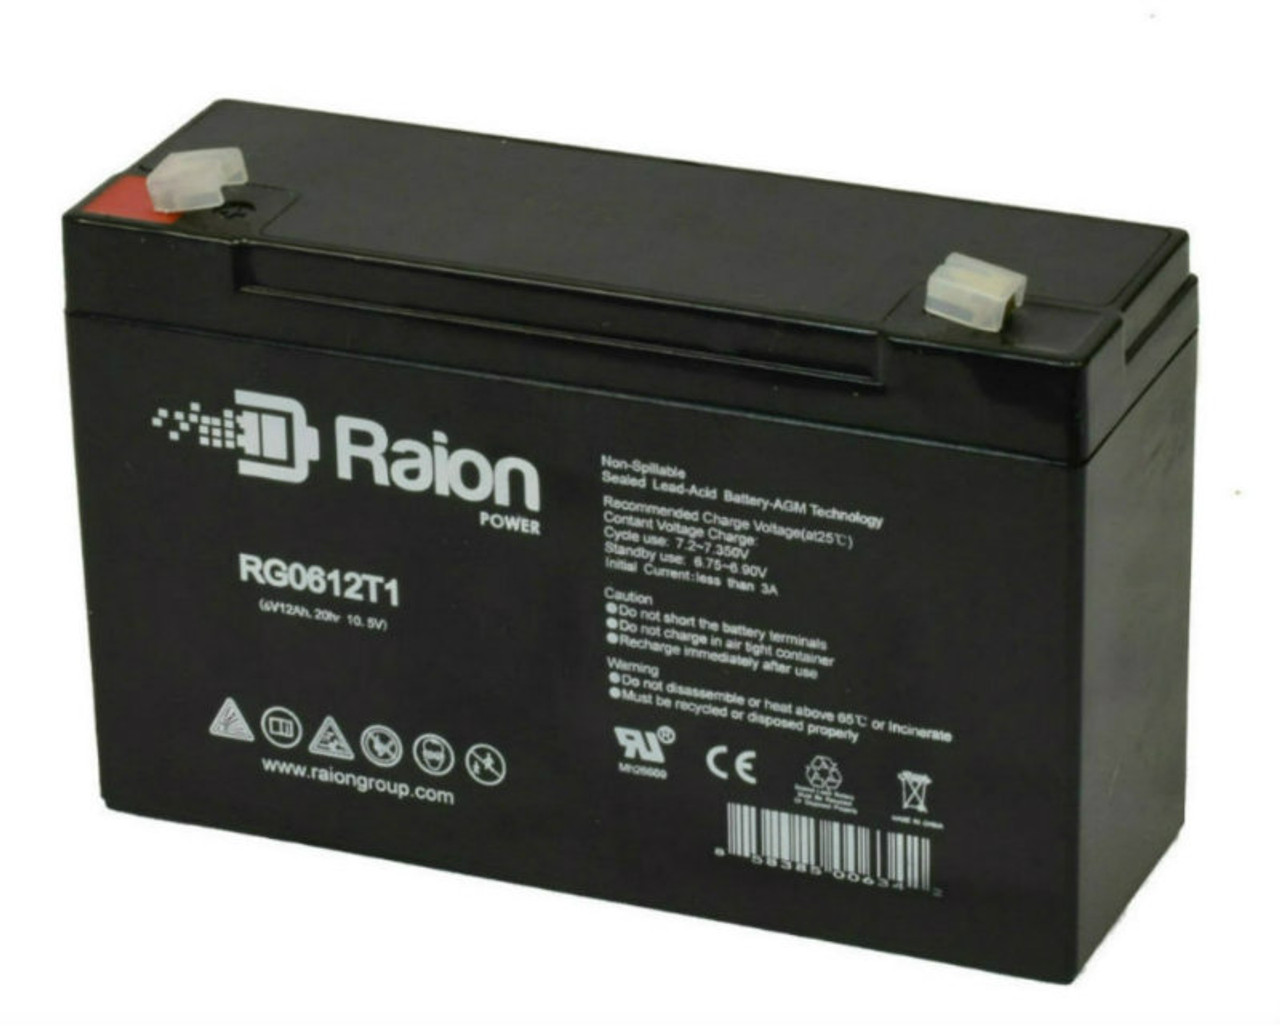 Raion Power RG06120T1 Replacement Battery Pack for Chloride D2MF50IQ2 emergency light